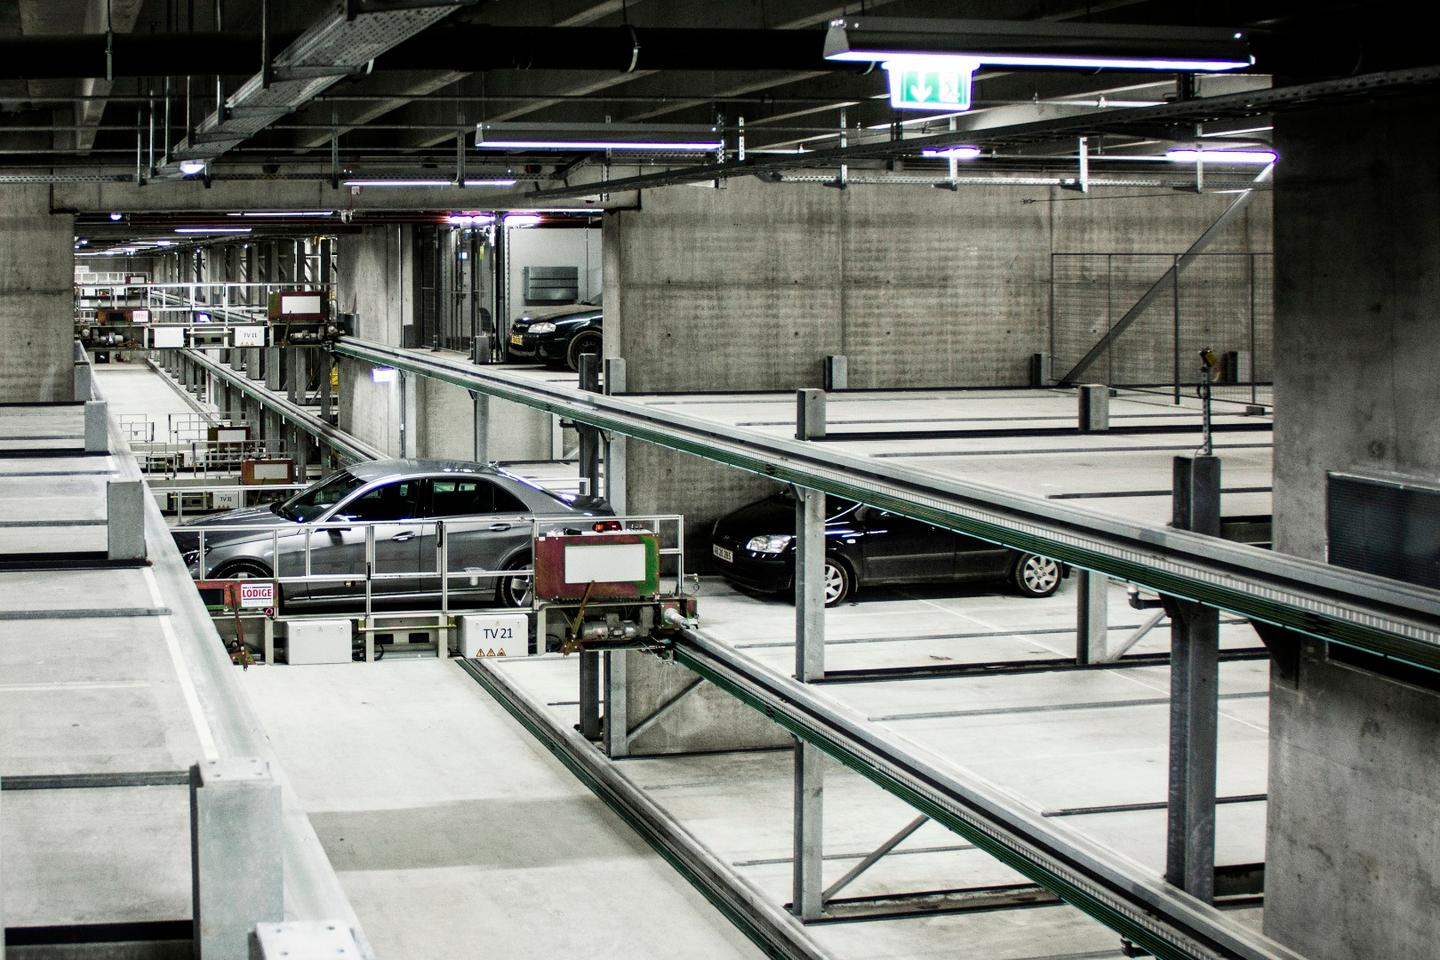 With a capacity for 1,000 cars, the Dokk1 automated car-park is said to be the largest of its kind in Europe